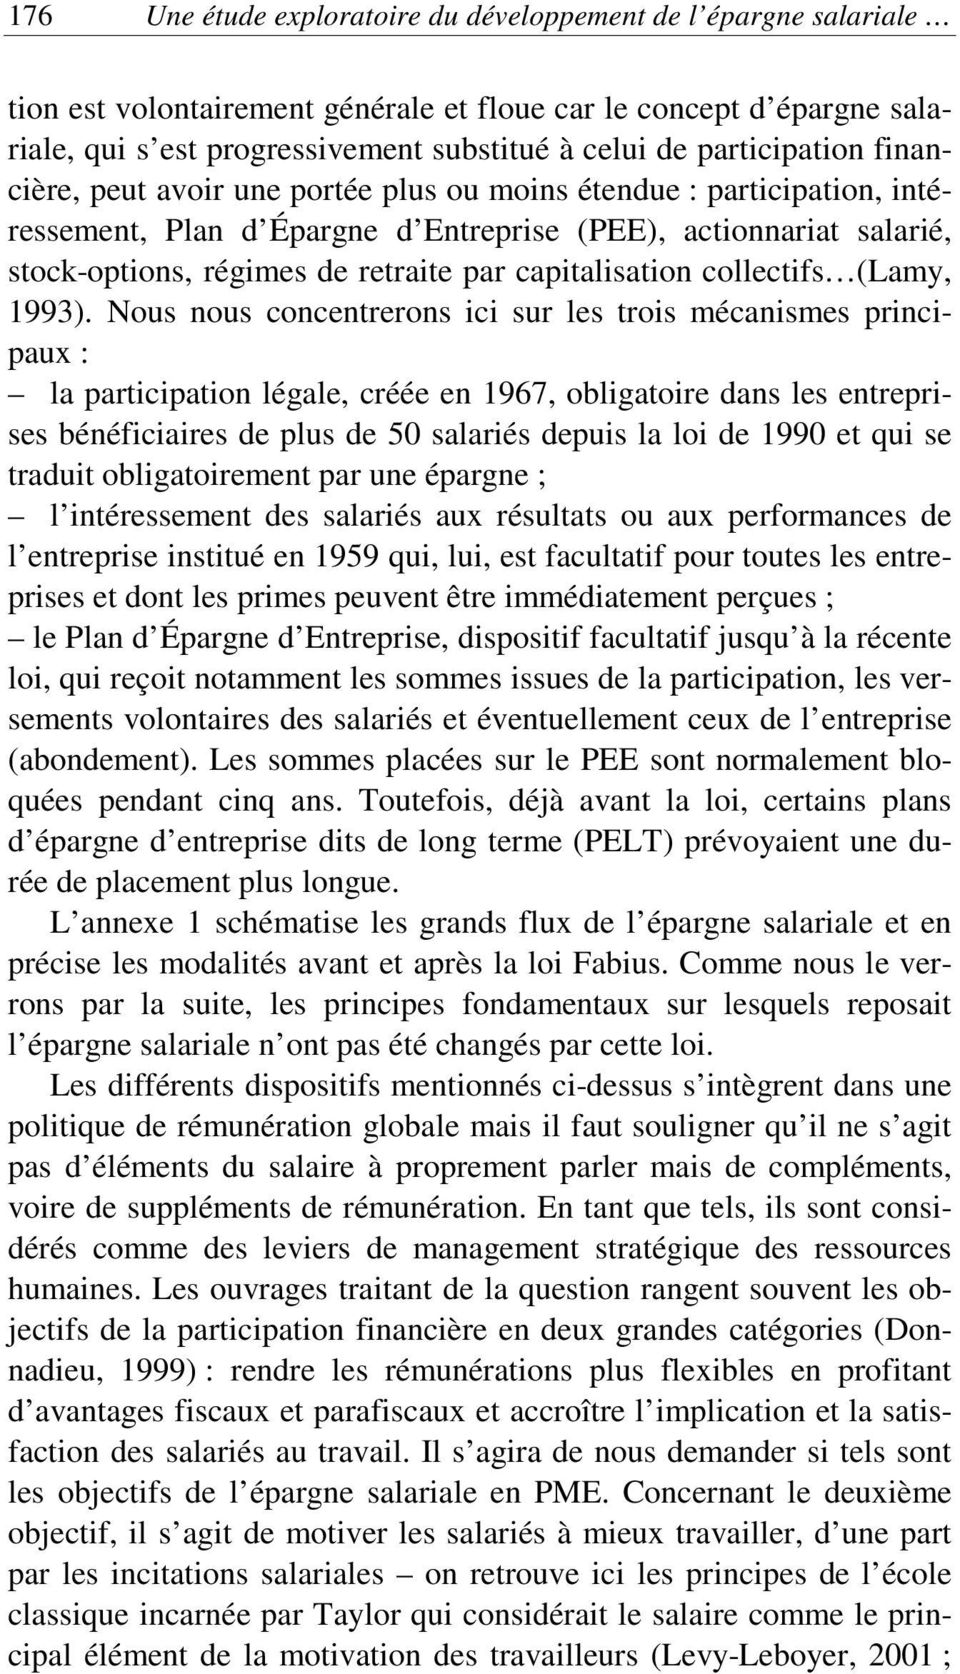 capitalisation collectifs (Lamy, 1993).